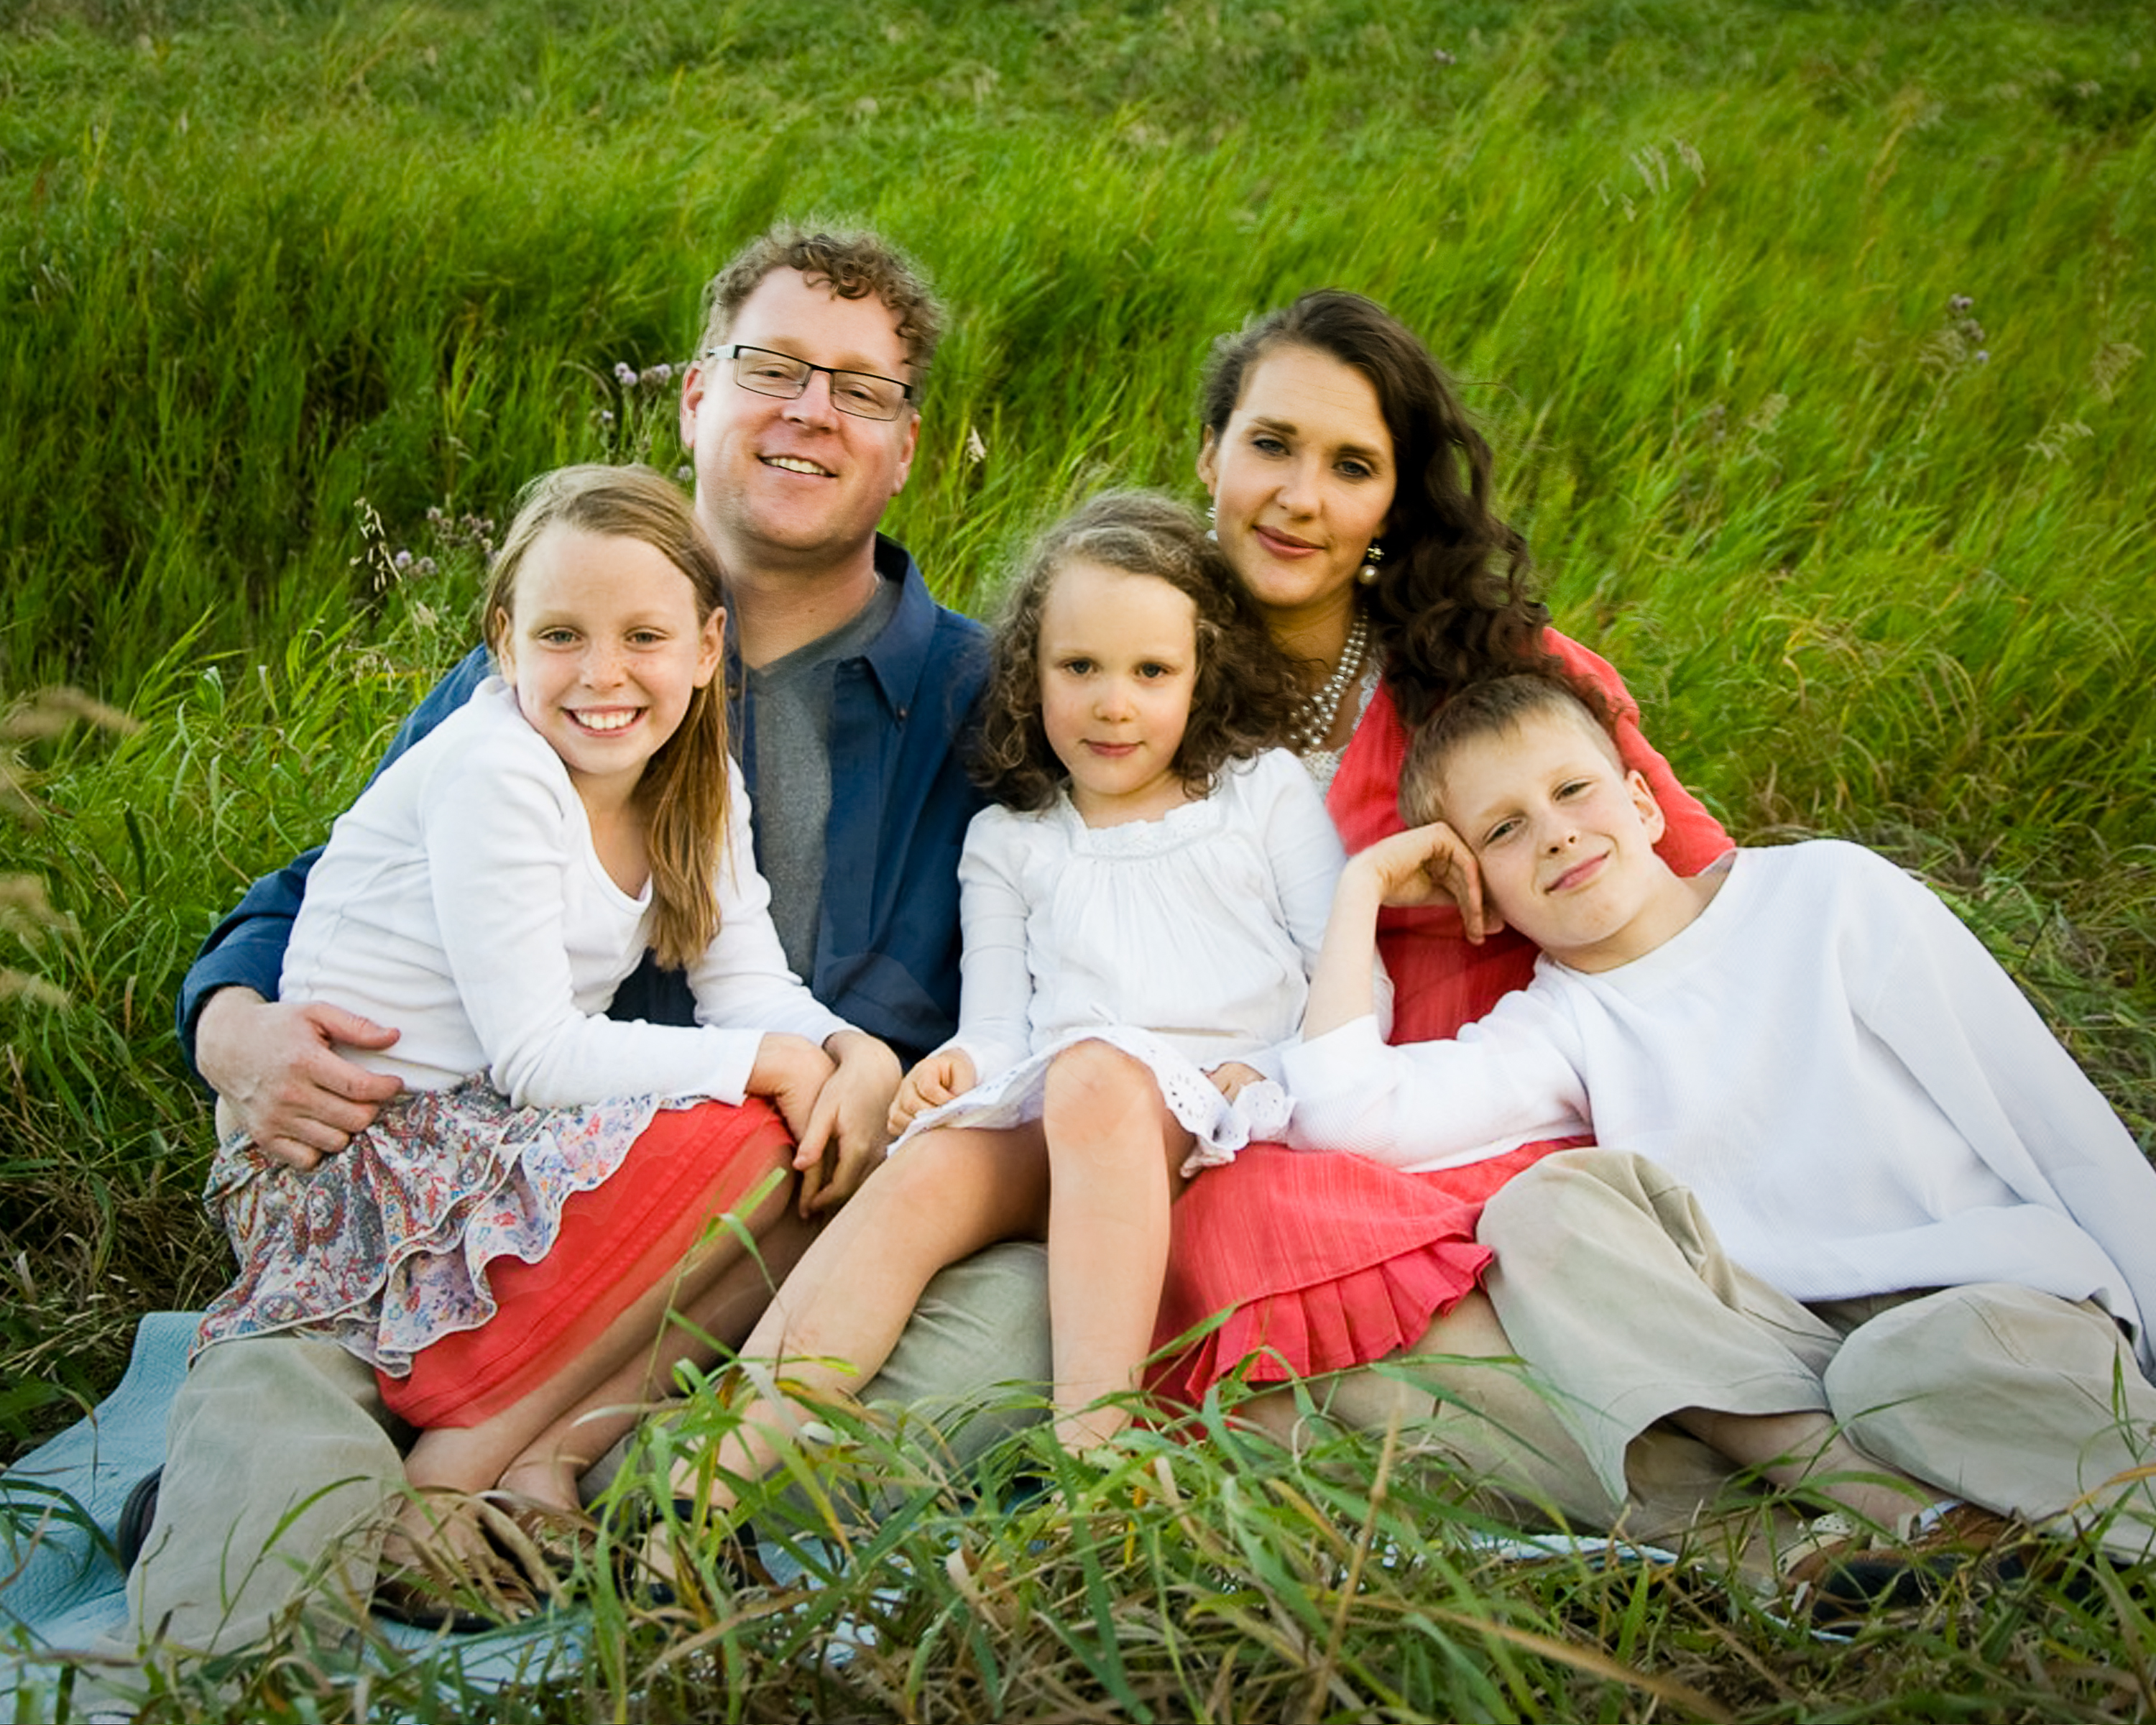 a valentine s tradition your family will never forget support family portrait 1 of 1 2